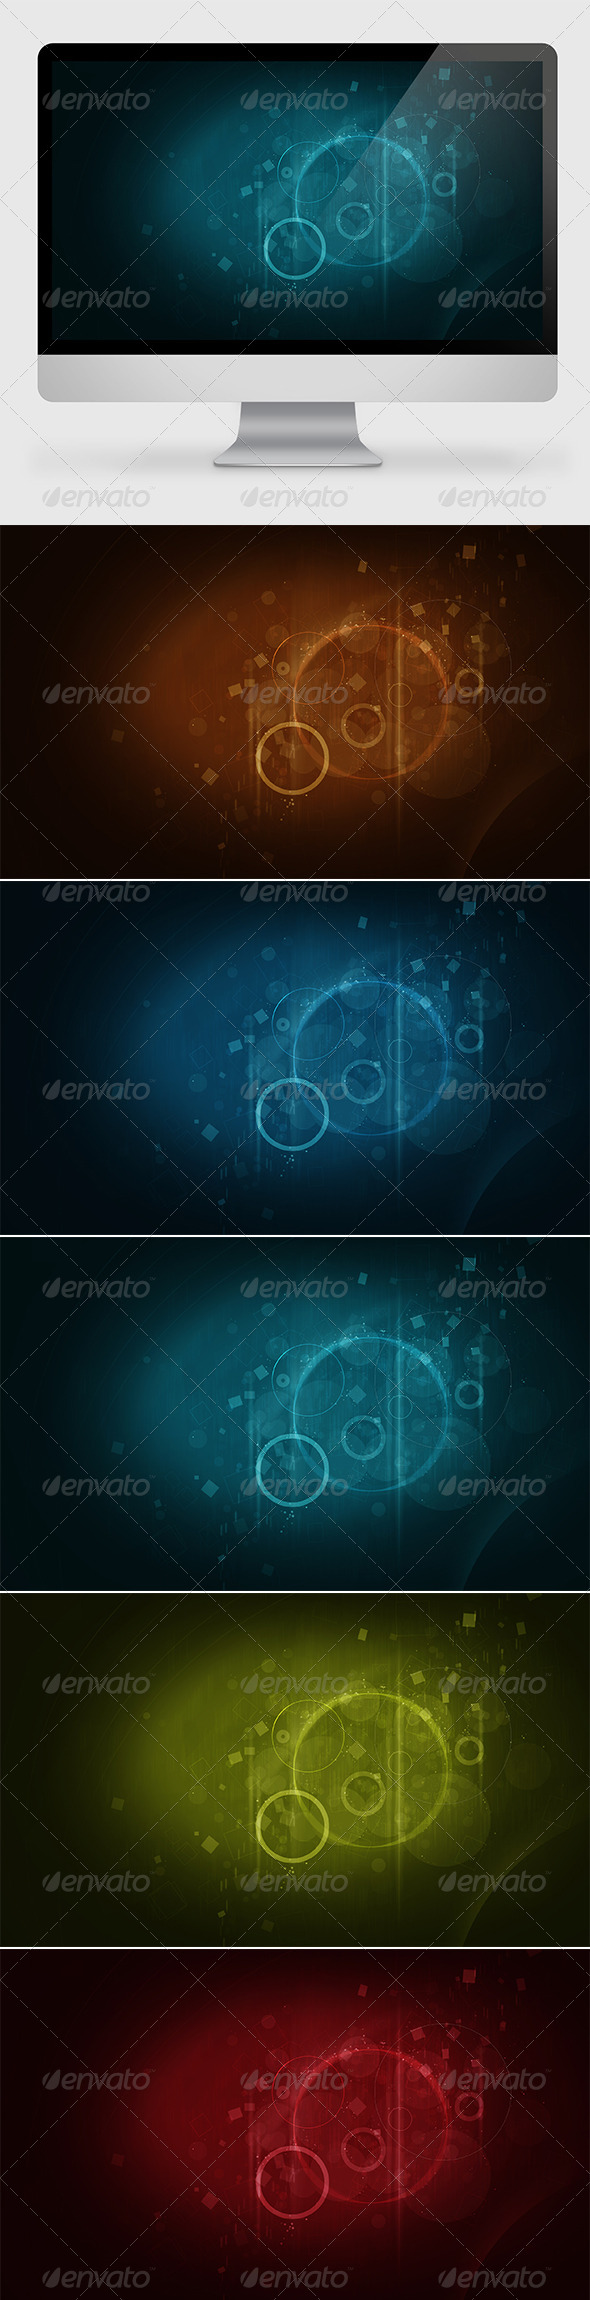 Abstract Geometrical Backgrounds - Abstract Backgrounds